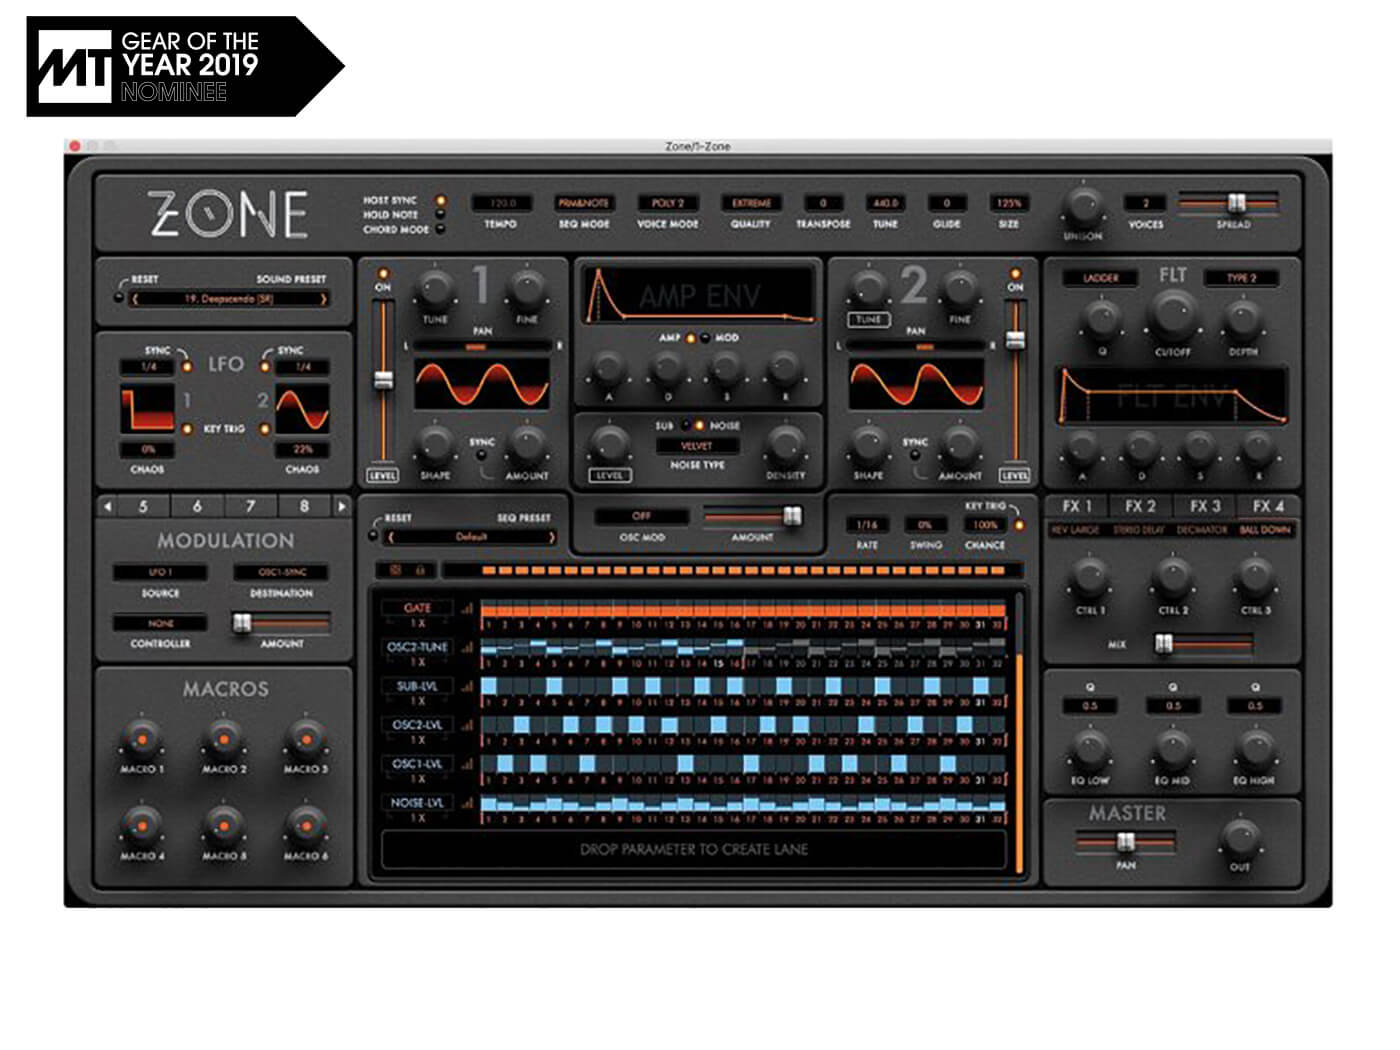 Gear Of The Year: Vote for the best software synthesizer of 2019